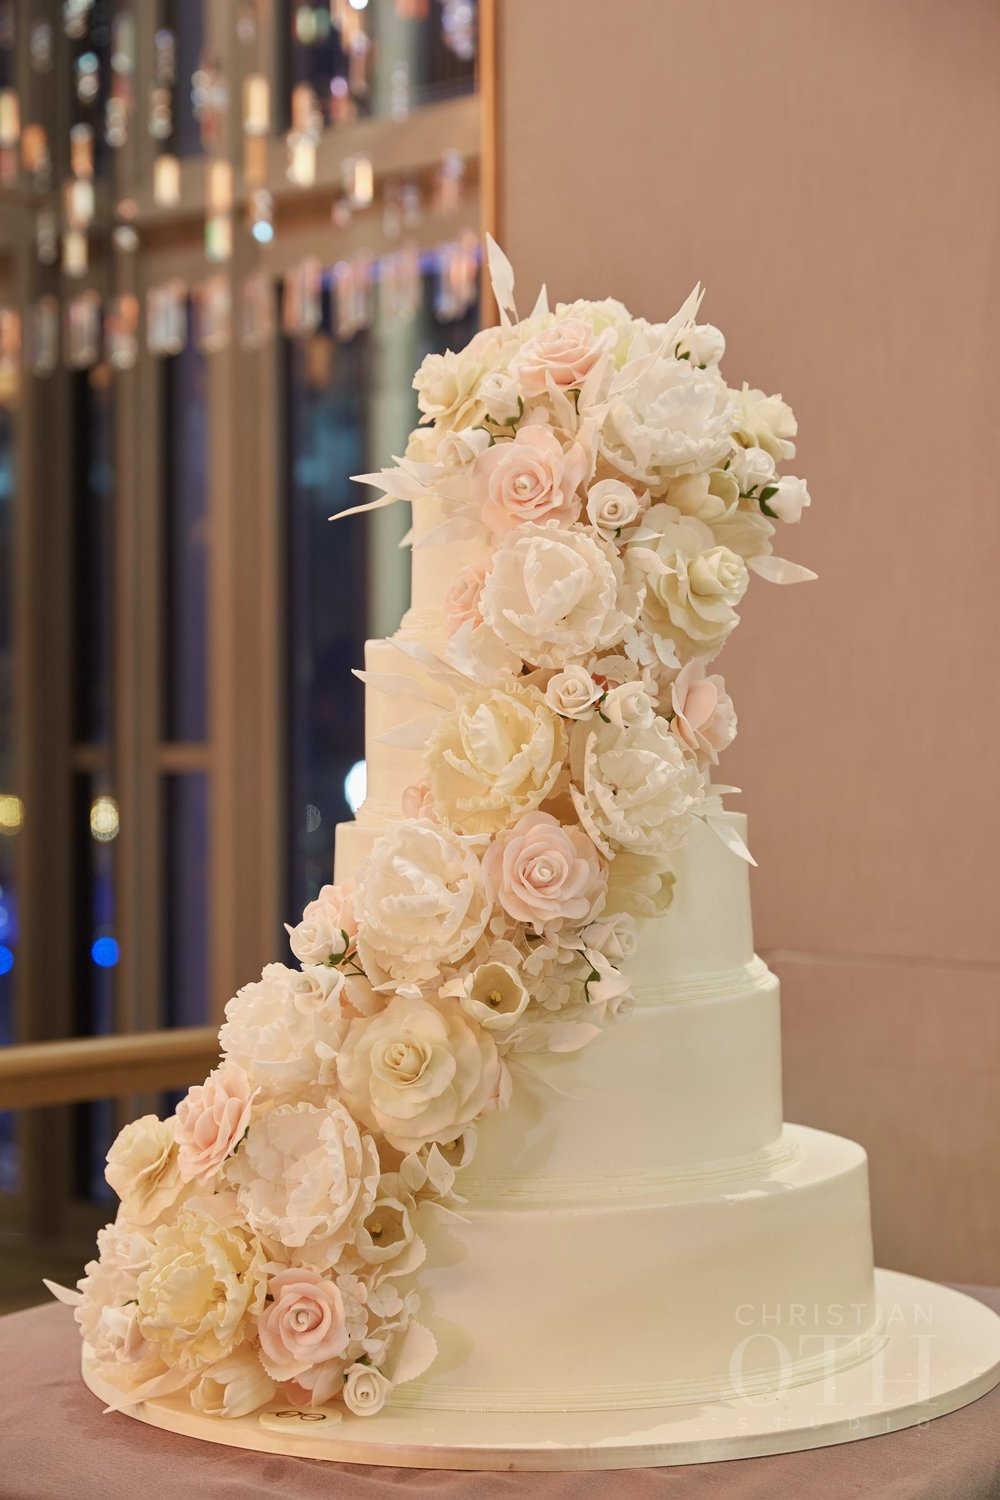 Sylvia Weinstock Wedding Cake. Photo by Christian Oth Studio.